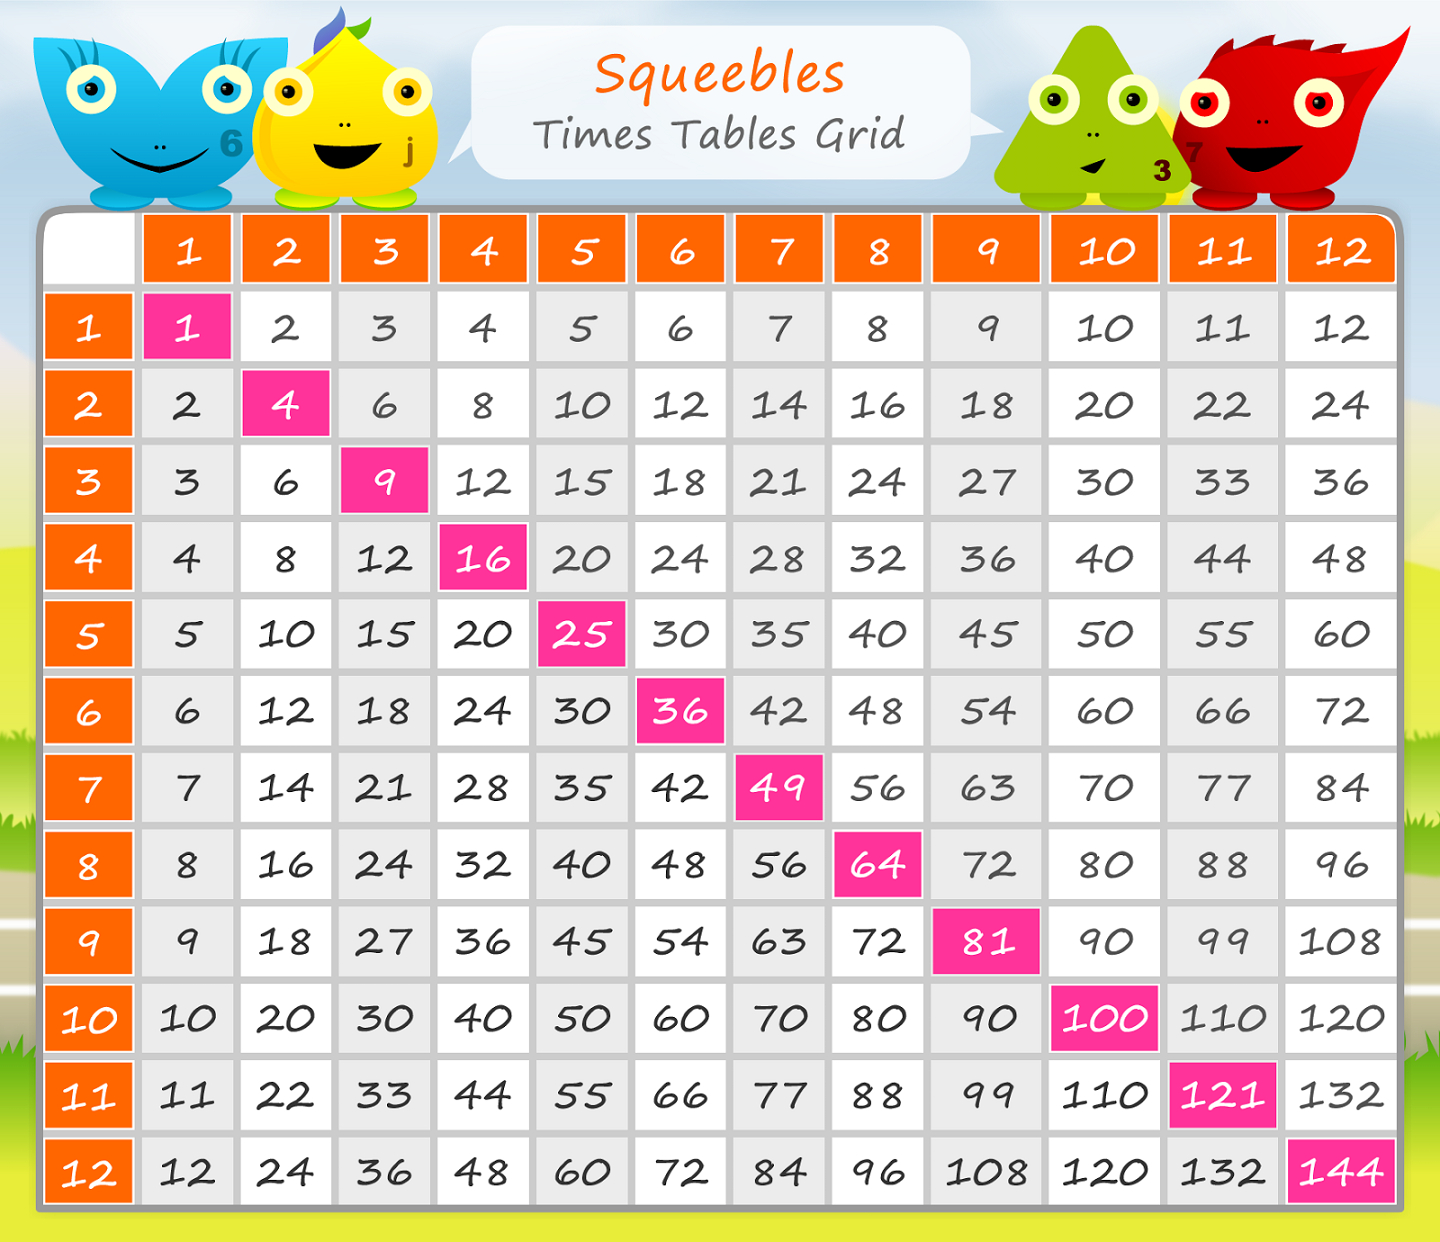 Times Table Chart 1-100 Printable | Times Table Chart throughout Printable Multiplication Flash Cards 1-15